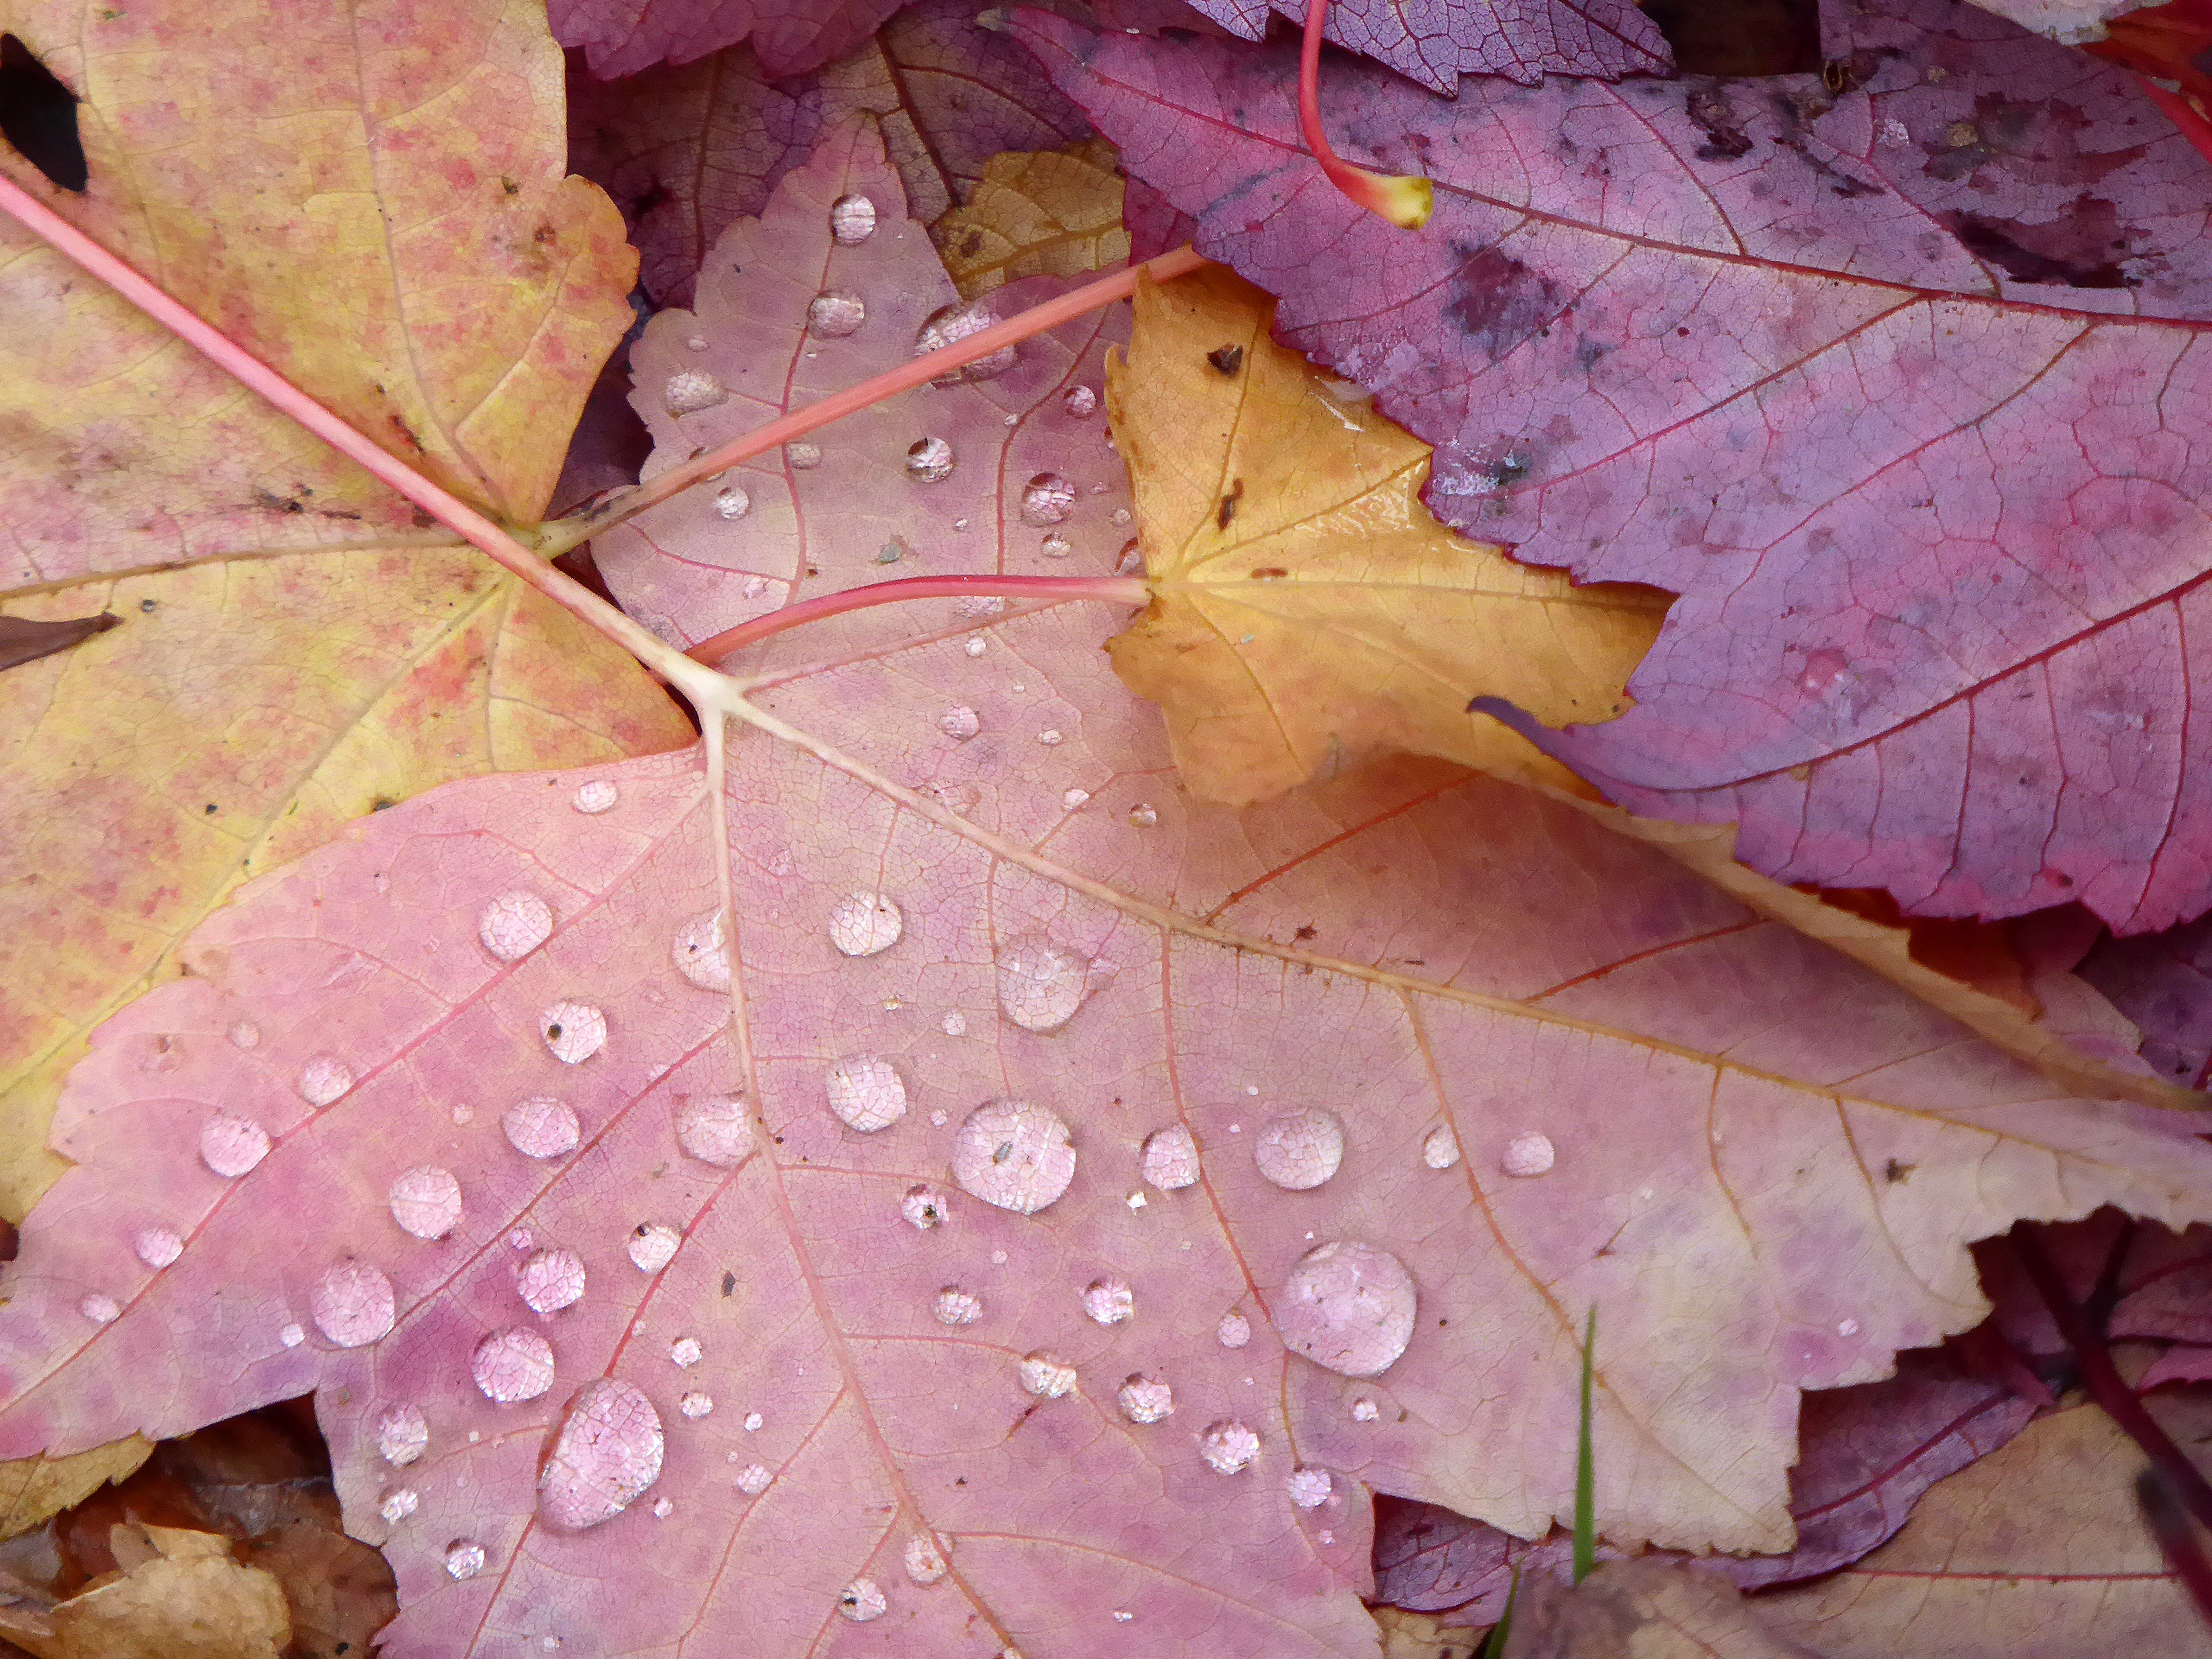 Rain drops on autumn leaves